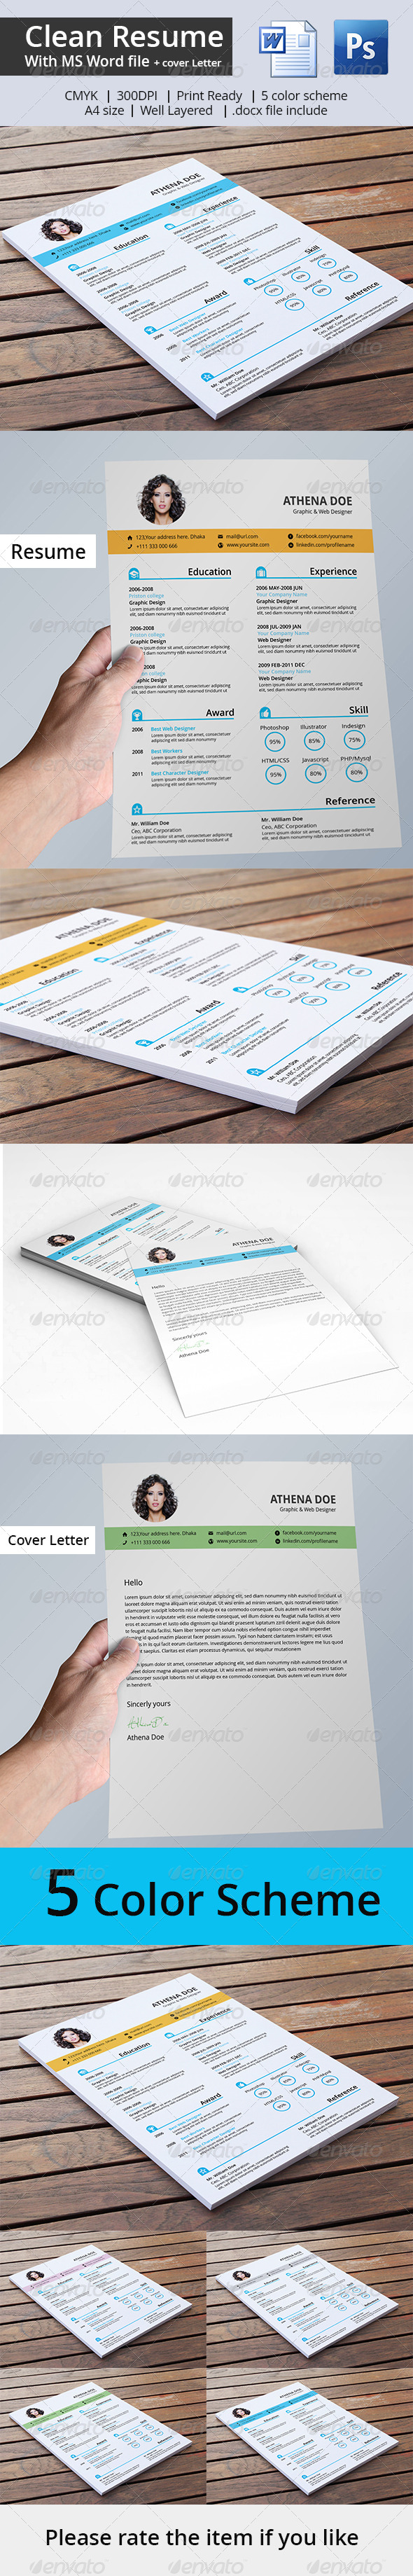 GraphicRiver Clean Resume & Cover Letter With MS Word 7301848